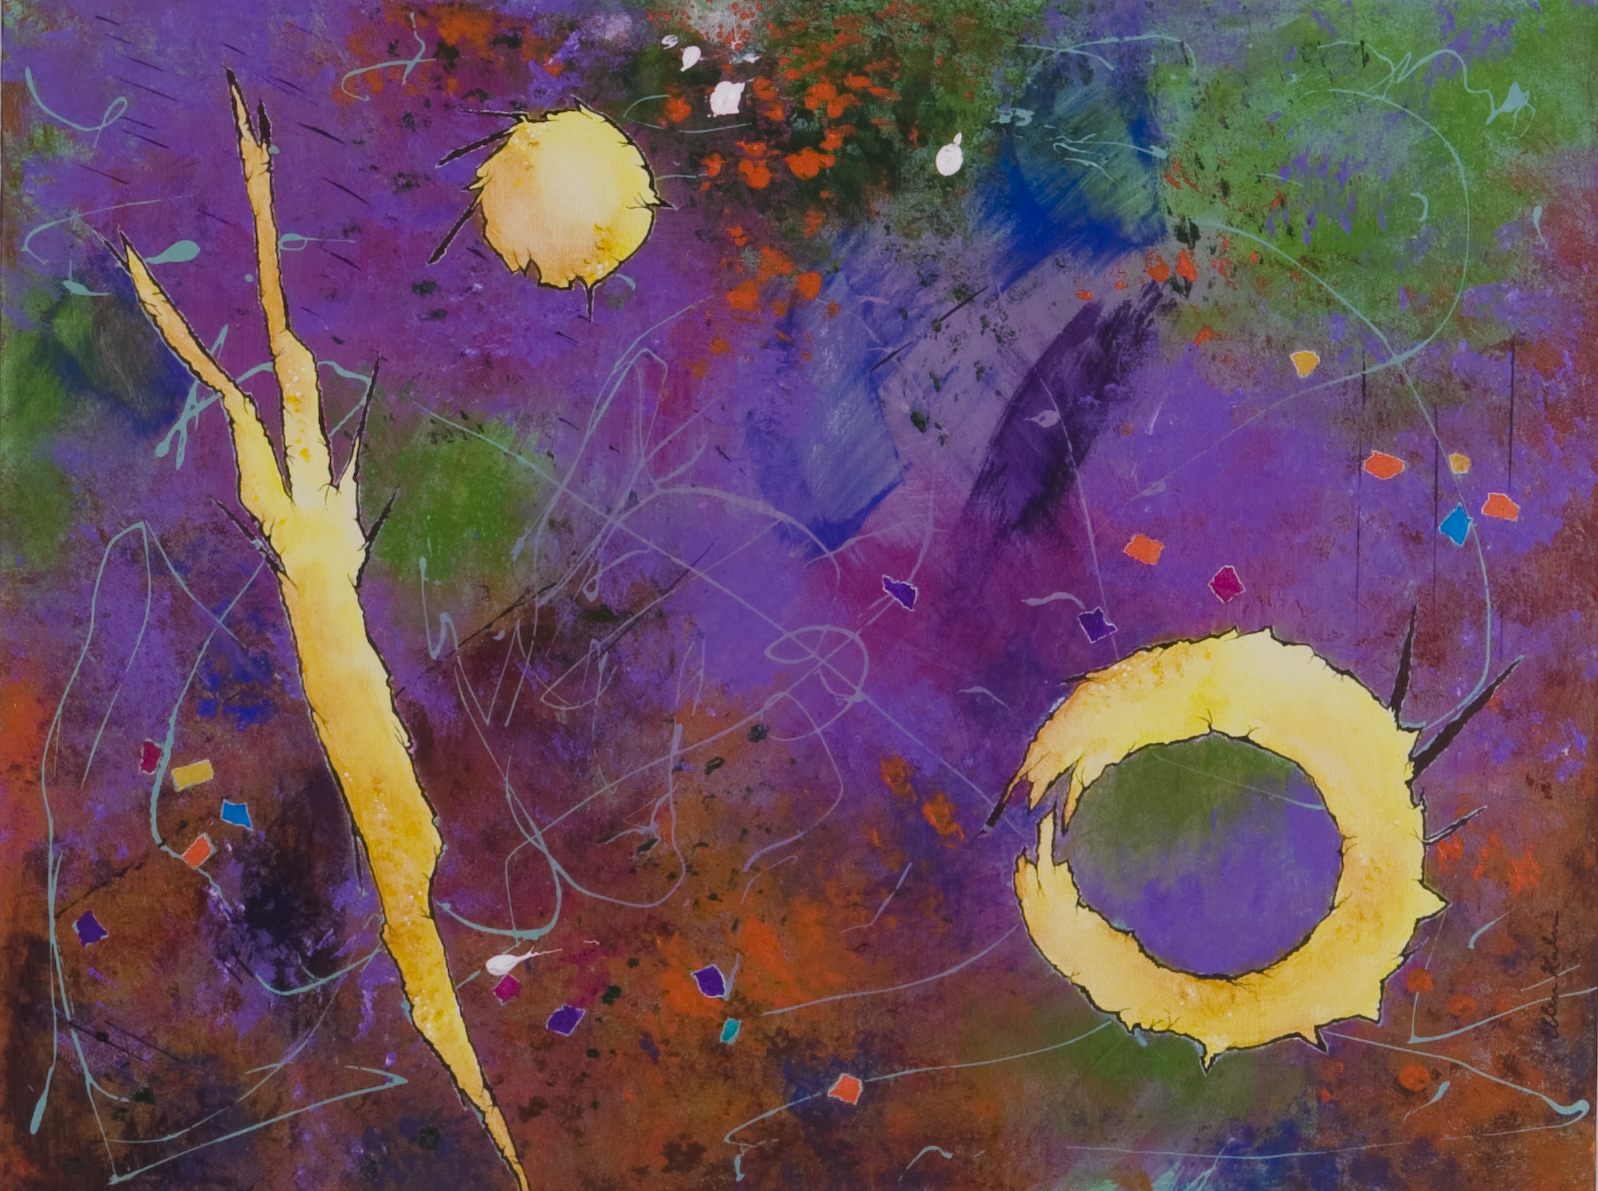 Signs in Space II - 24x18, $750